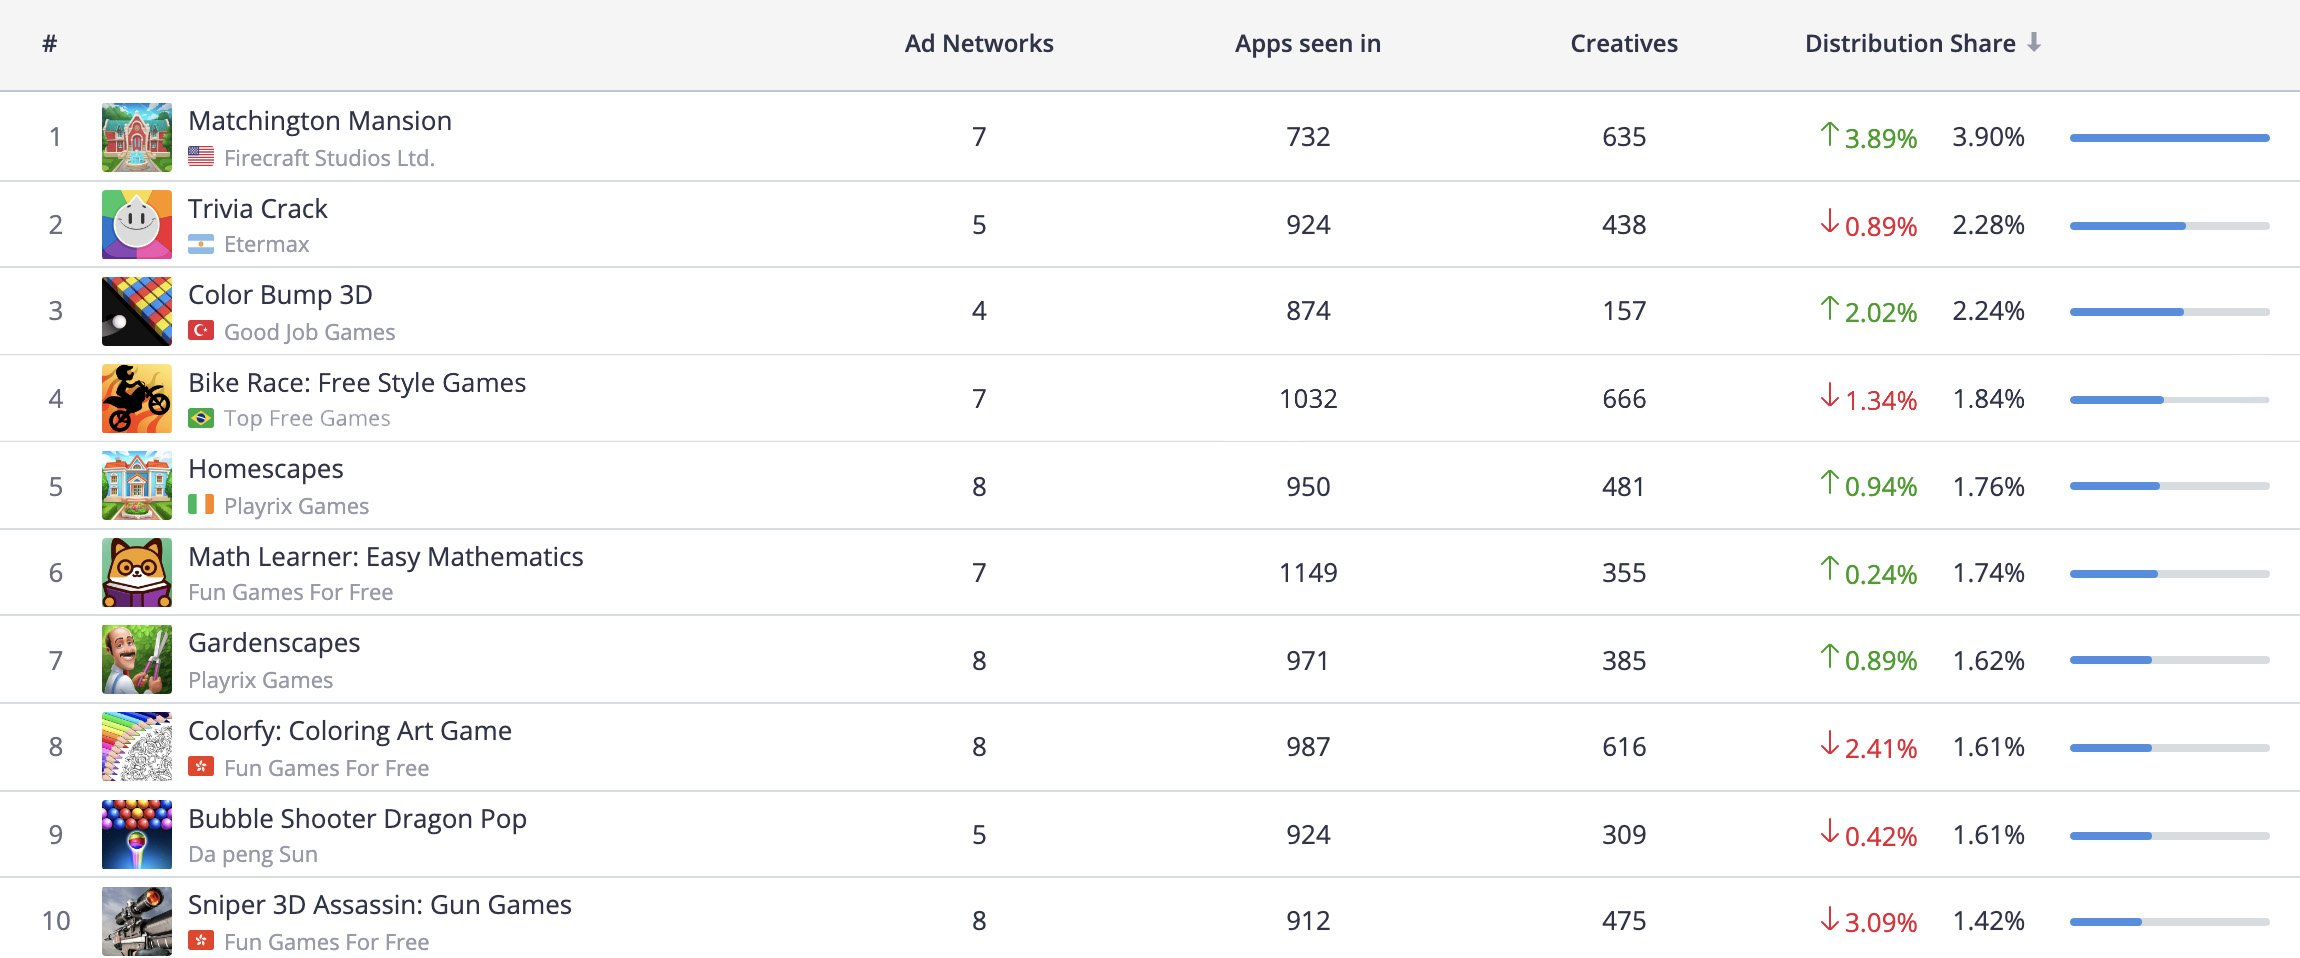 Top 10 Advertisers, iOS